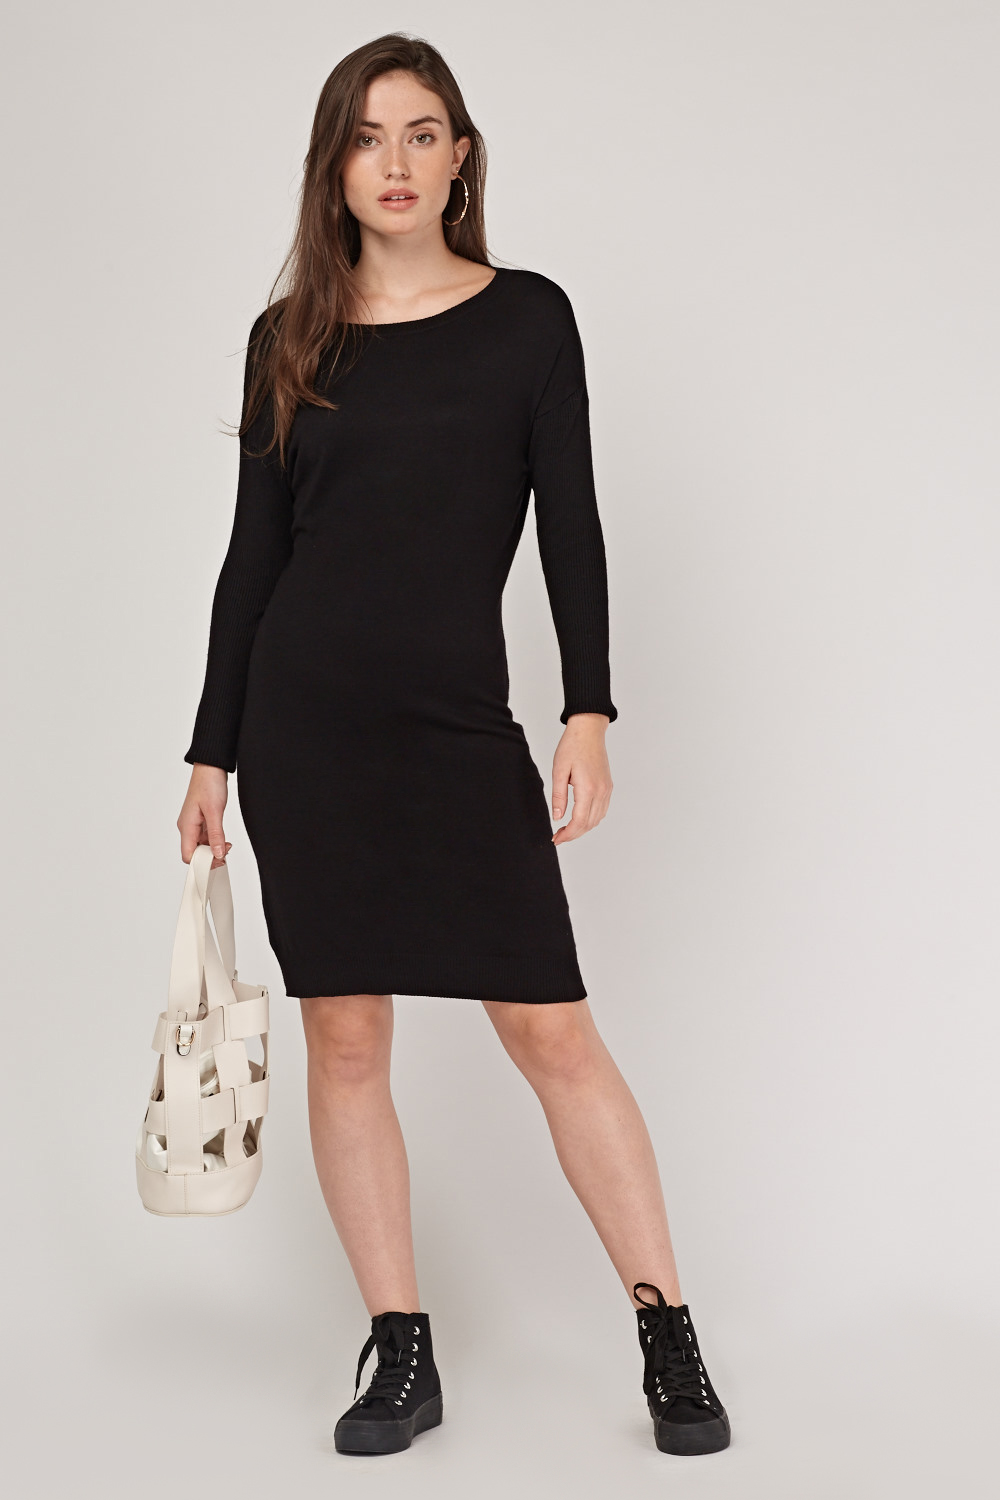 for sale discount up to 60% great deals 2017 Fine Knit Midi Jumper Dress - Just £5